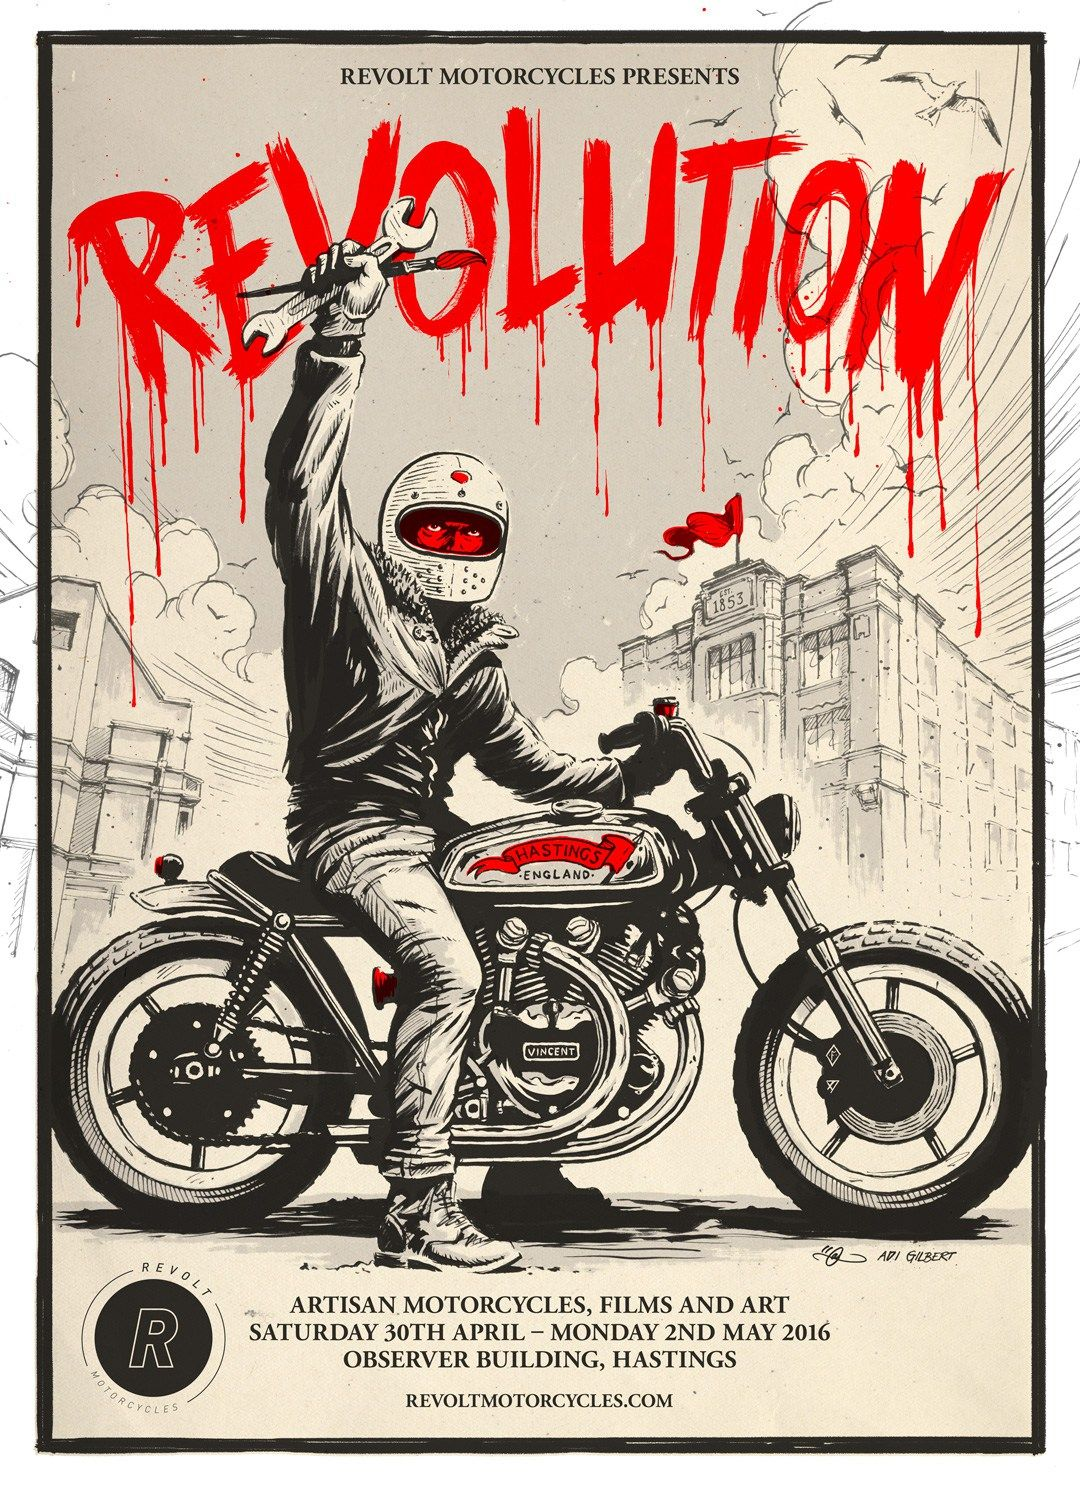 Illustration Poster Design For The Revolution Motorcycle Art Film Show In Hastings Hand Drawn With Brush Ink Gouache Digital Colouration